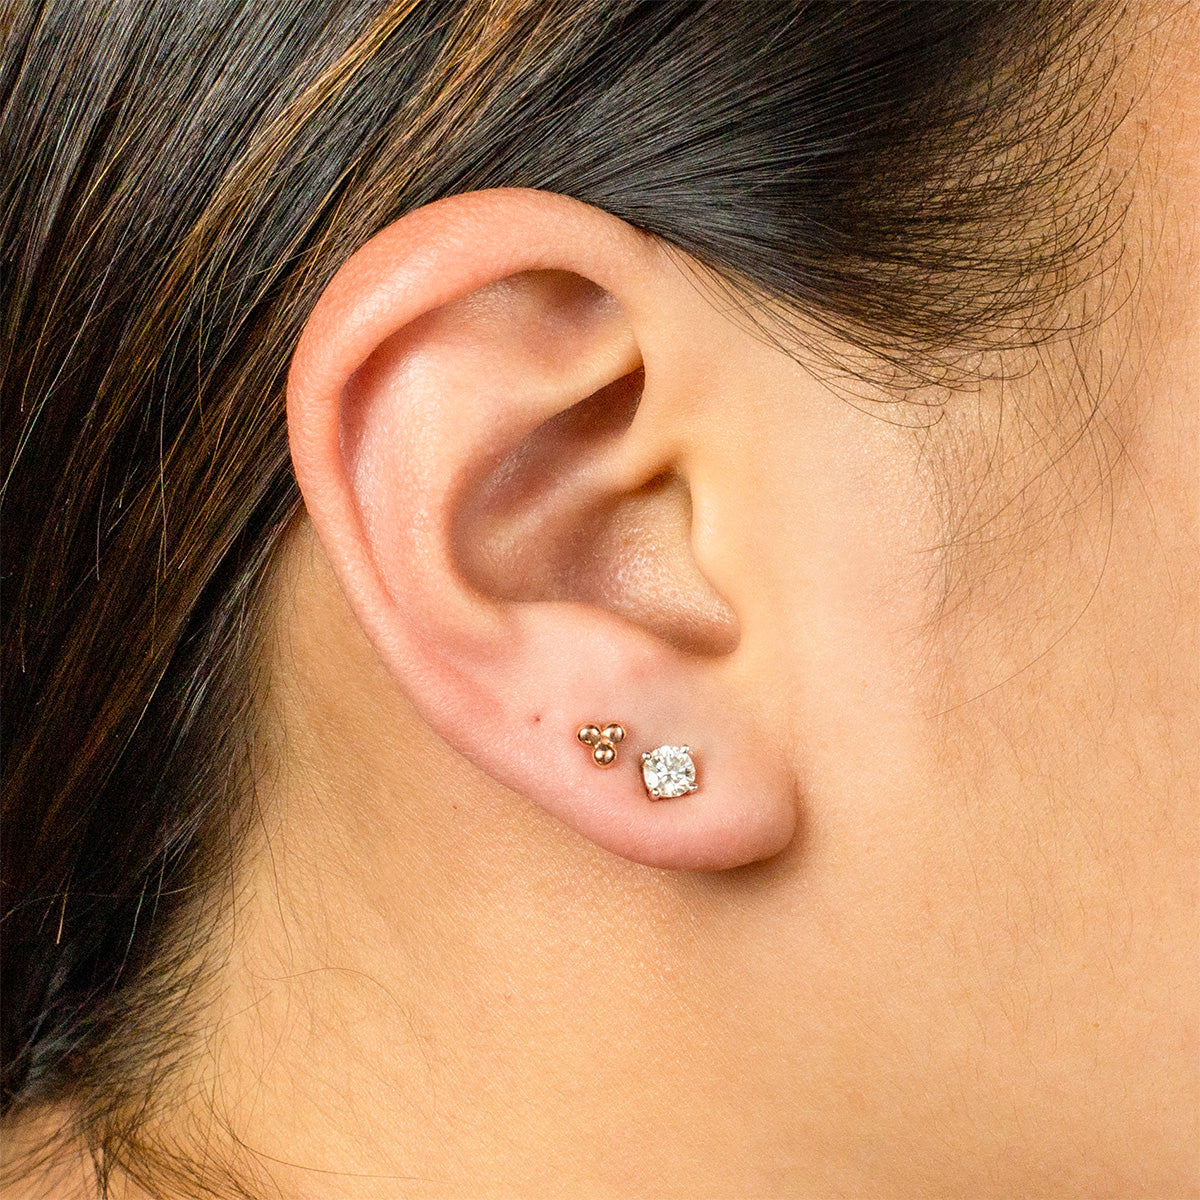 Three Ball Earring - 14K Rose Gold